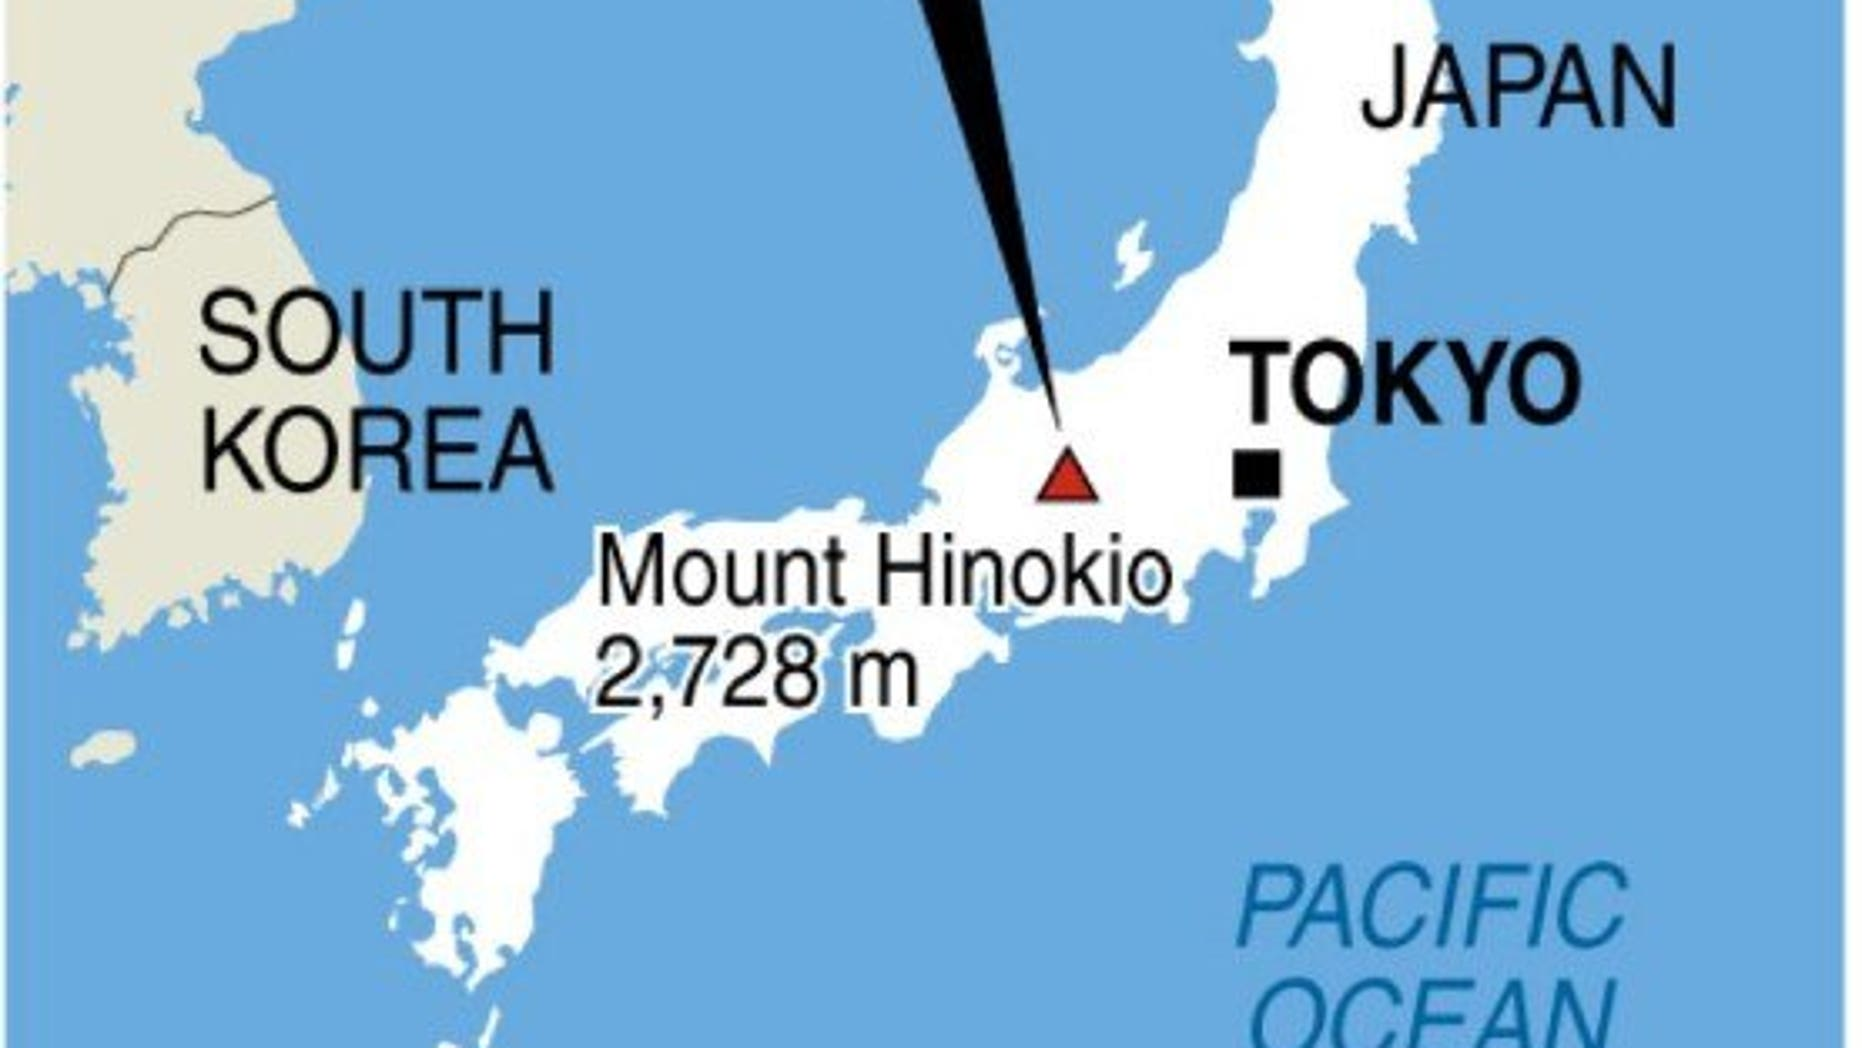 Graphic map showing Japan's Mount Hinokio, where three South Korean climbers have been found dead.